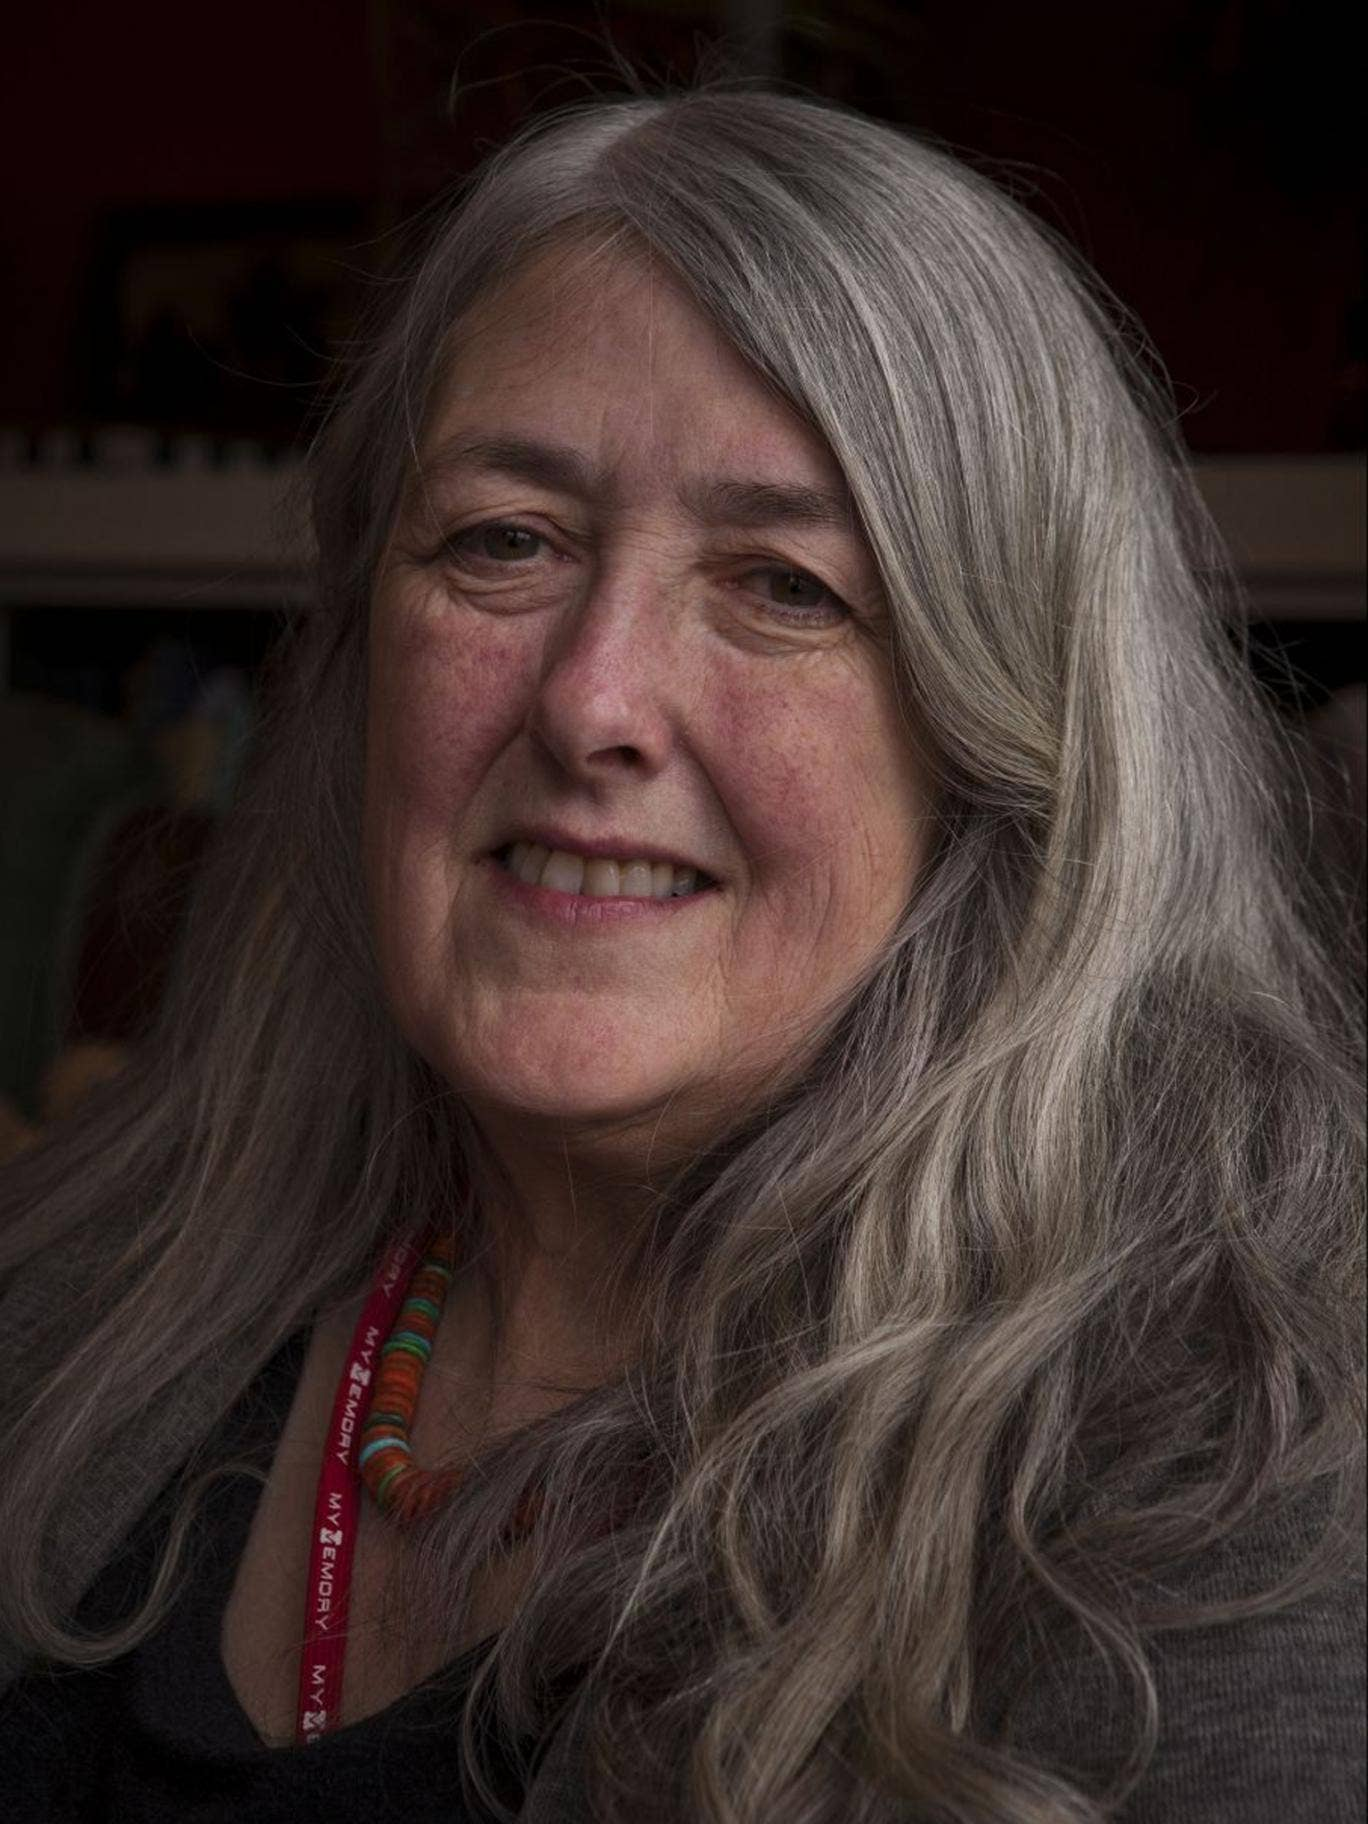 Mary Beard, who is professor of classics at the University of Cambridge, has written and presented several popular BBC Two documentaries on Roman history